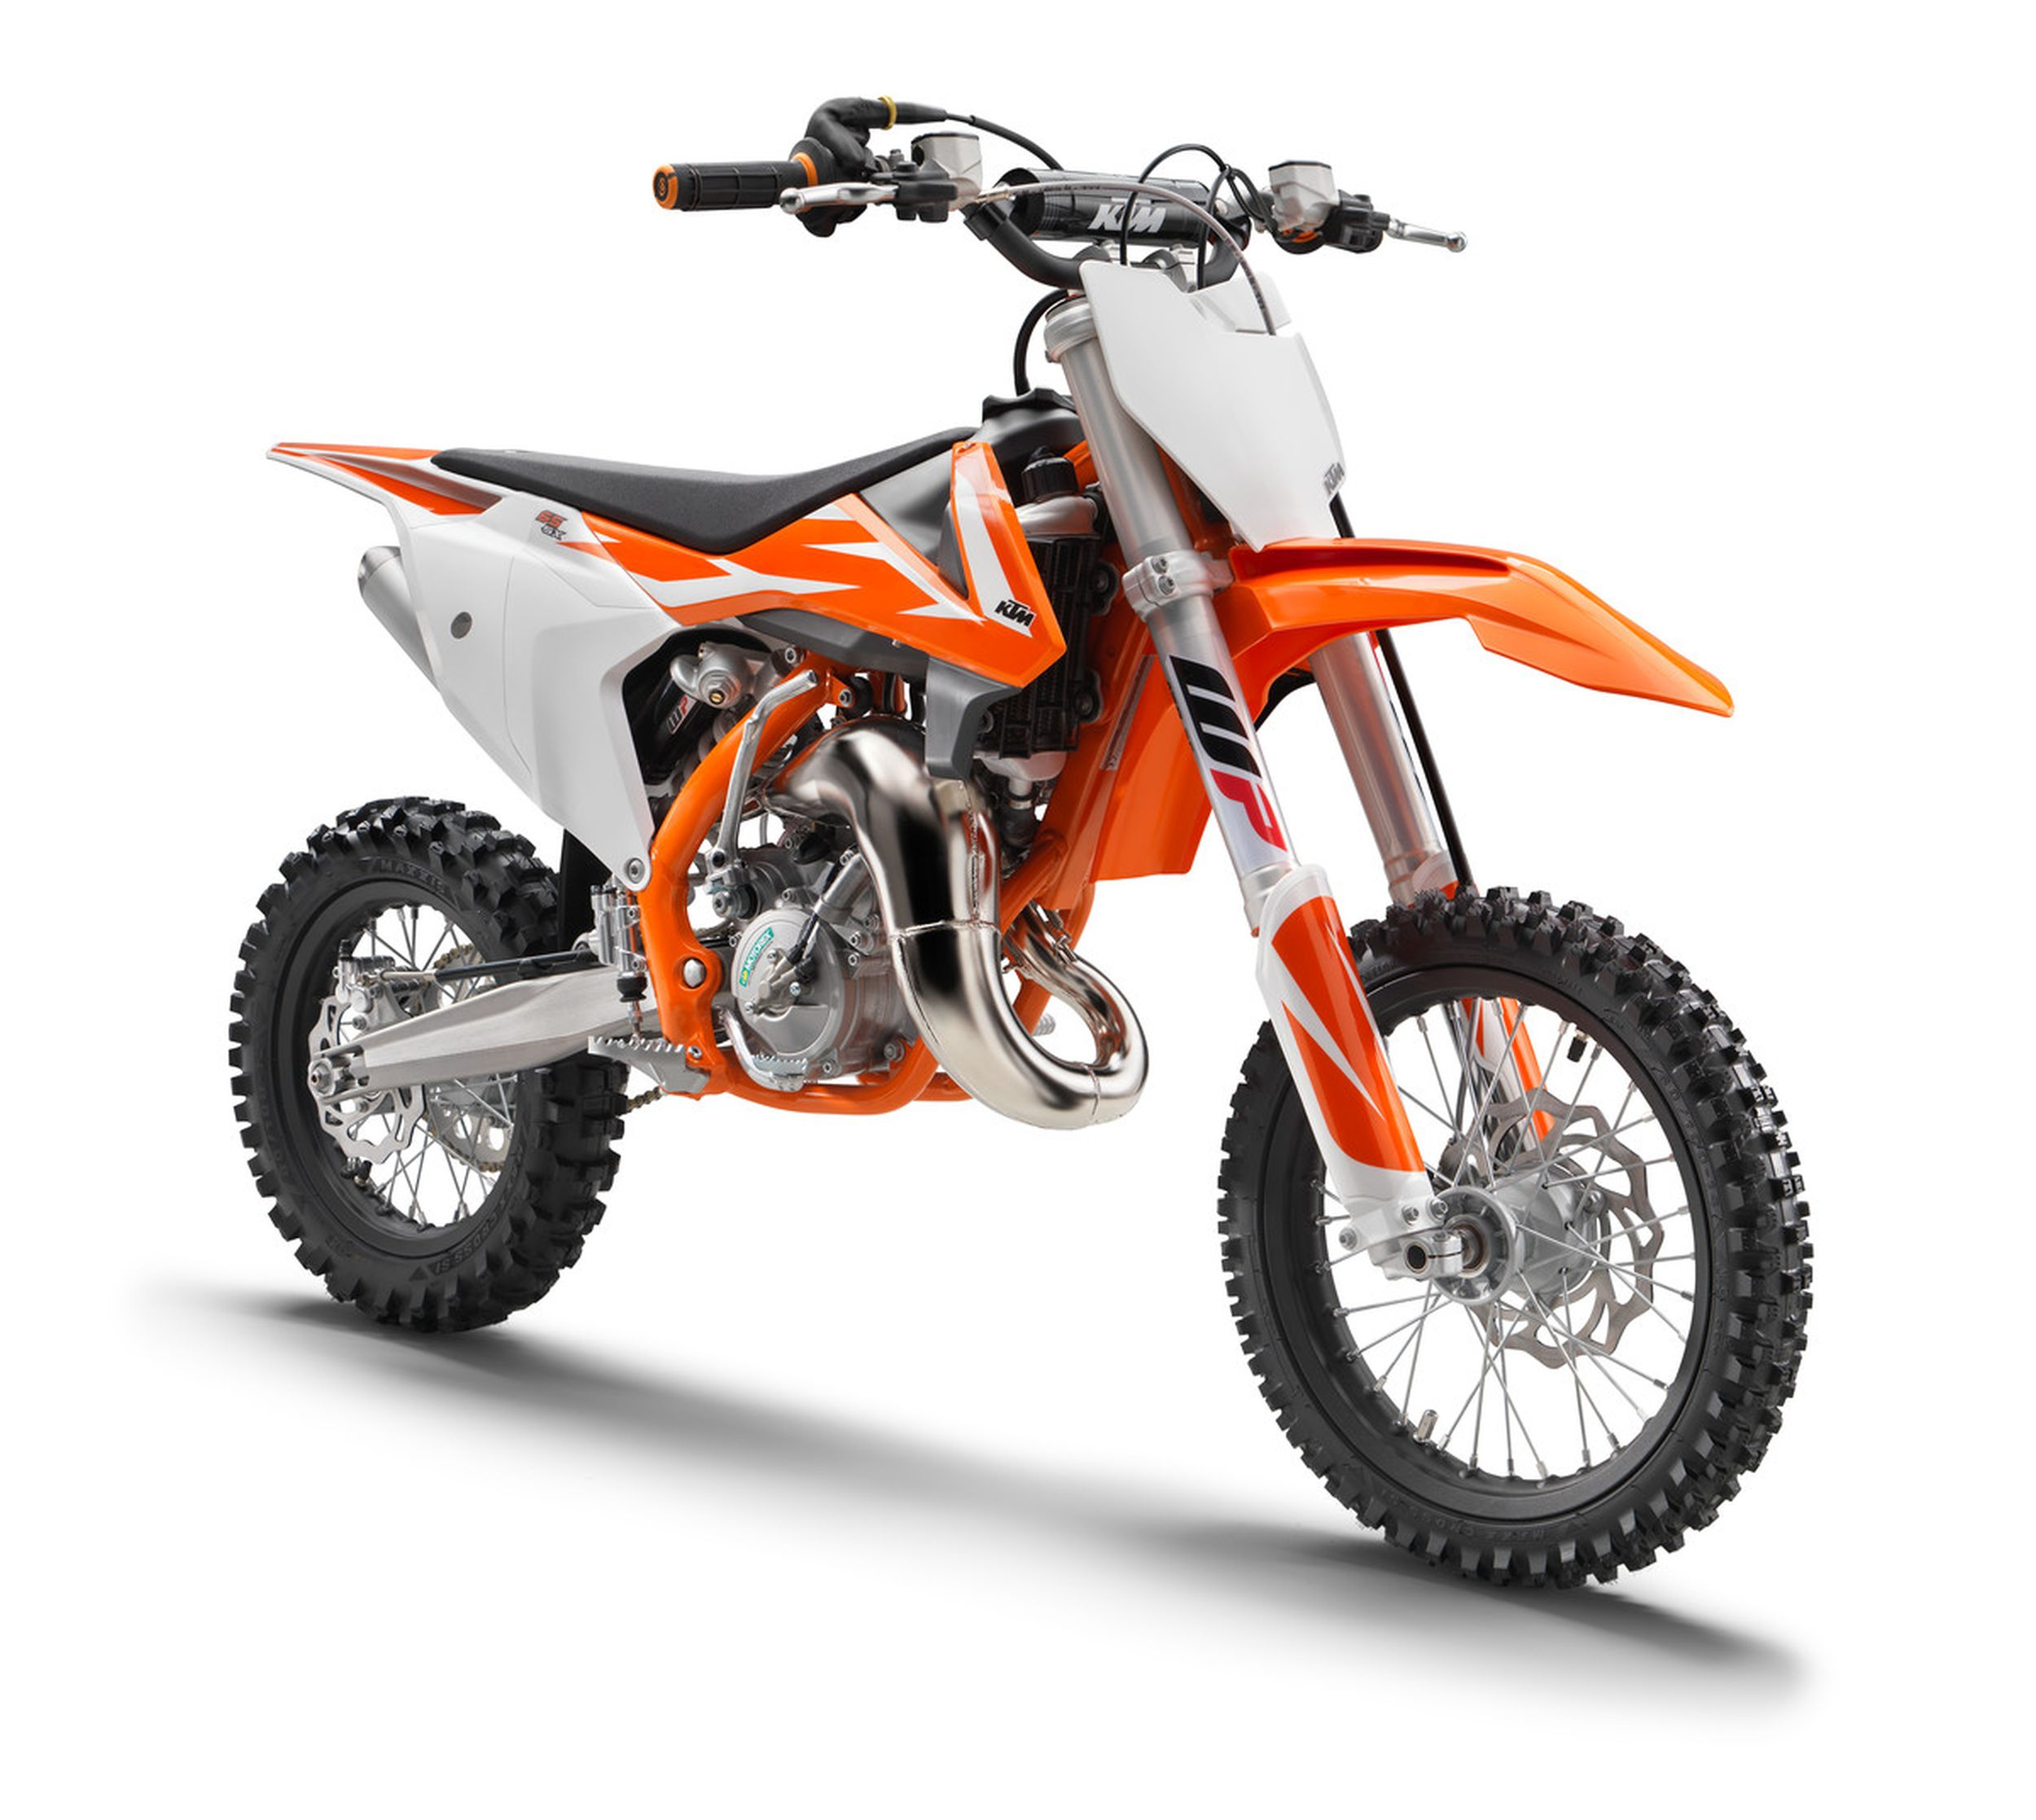 Ktm Adventure R For Sale Australia